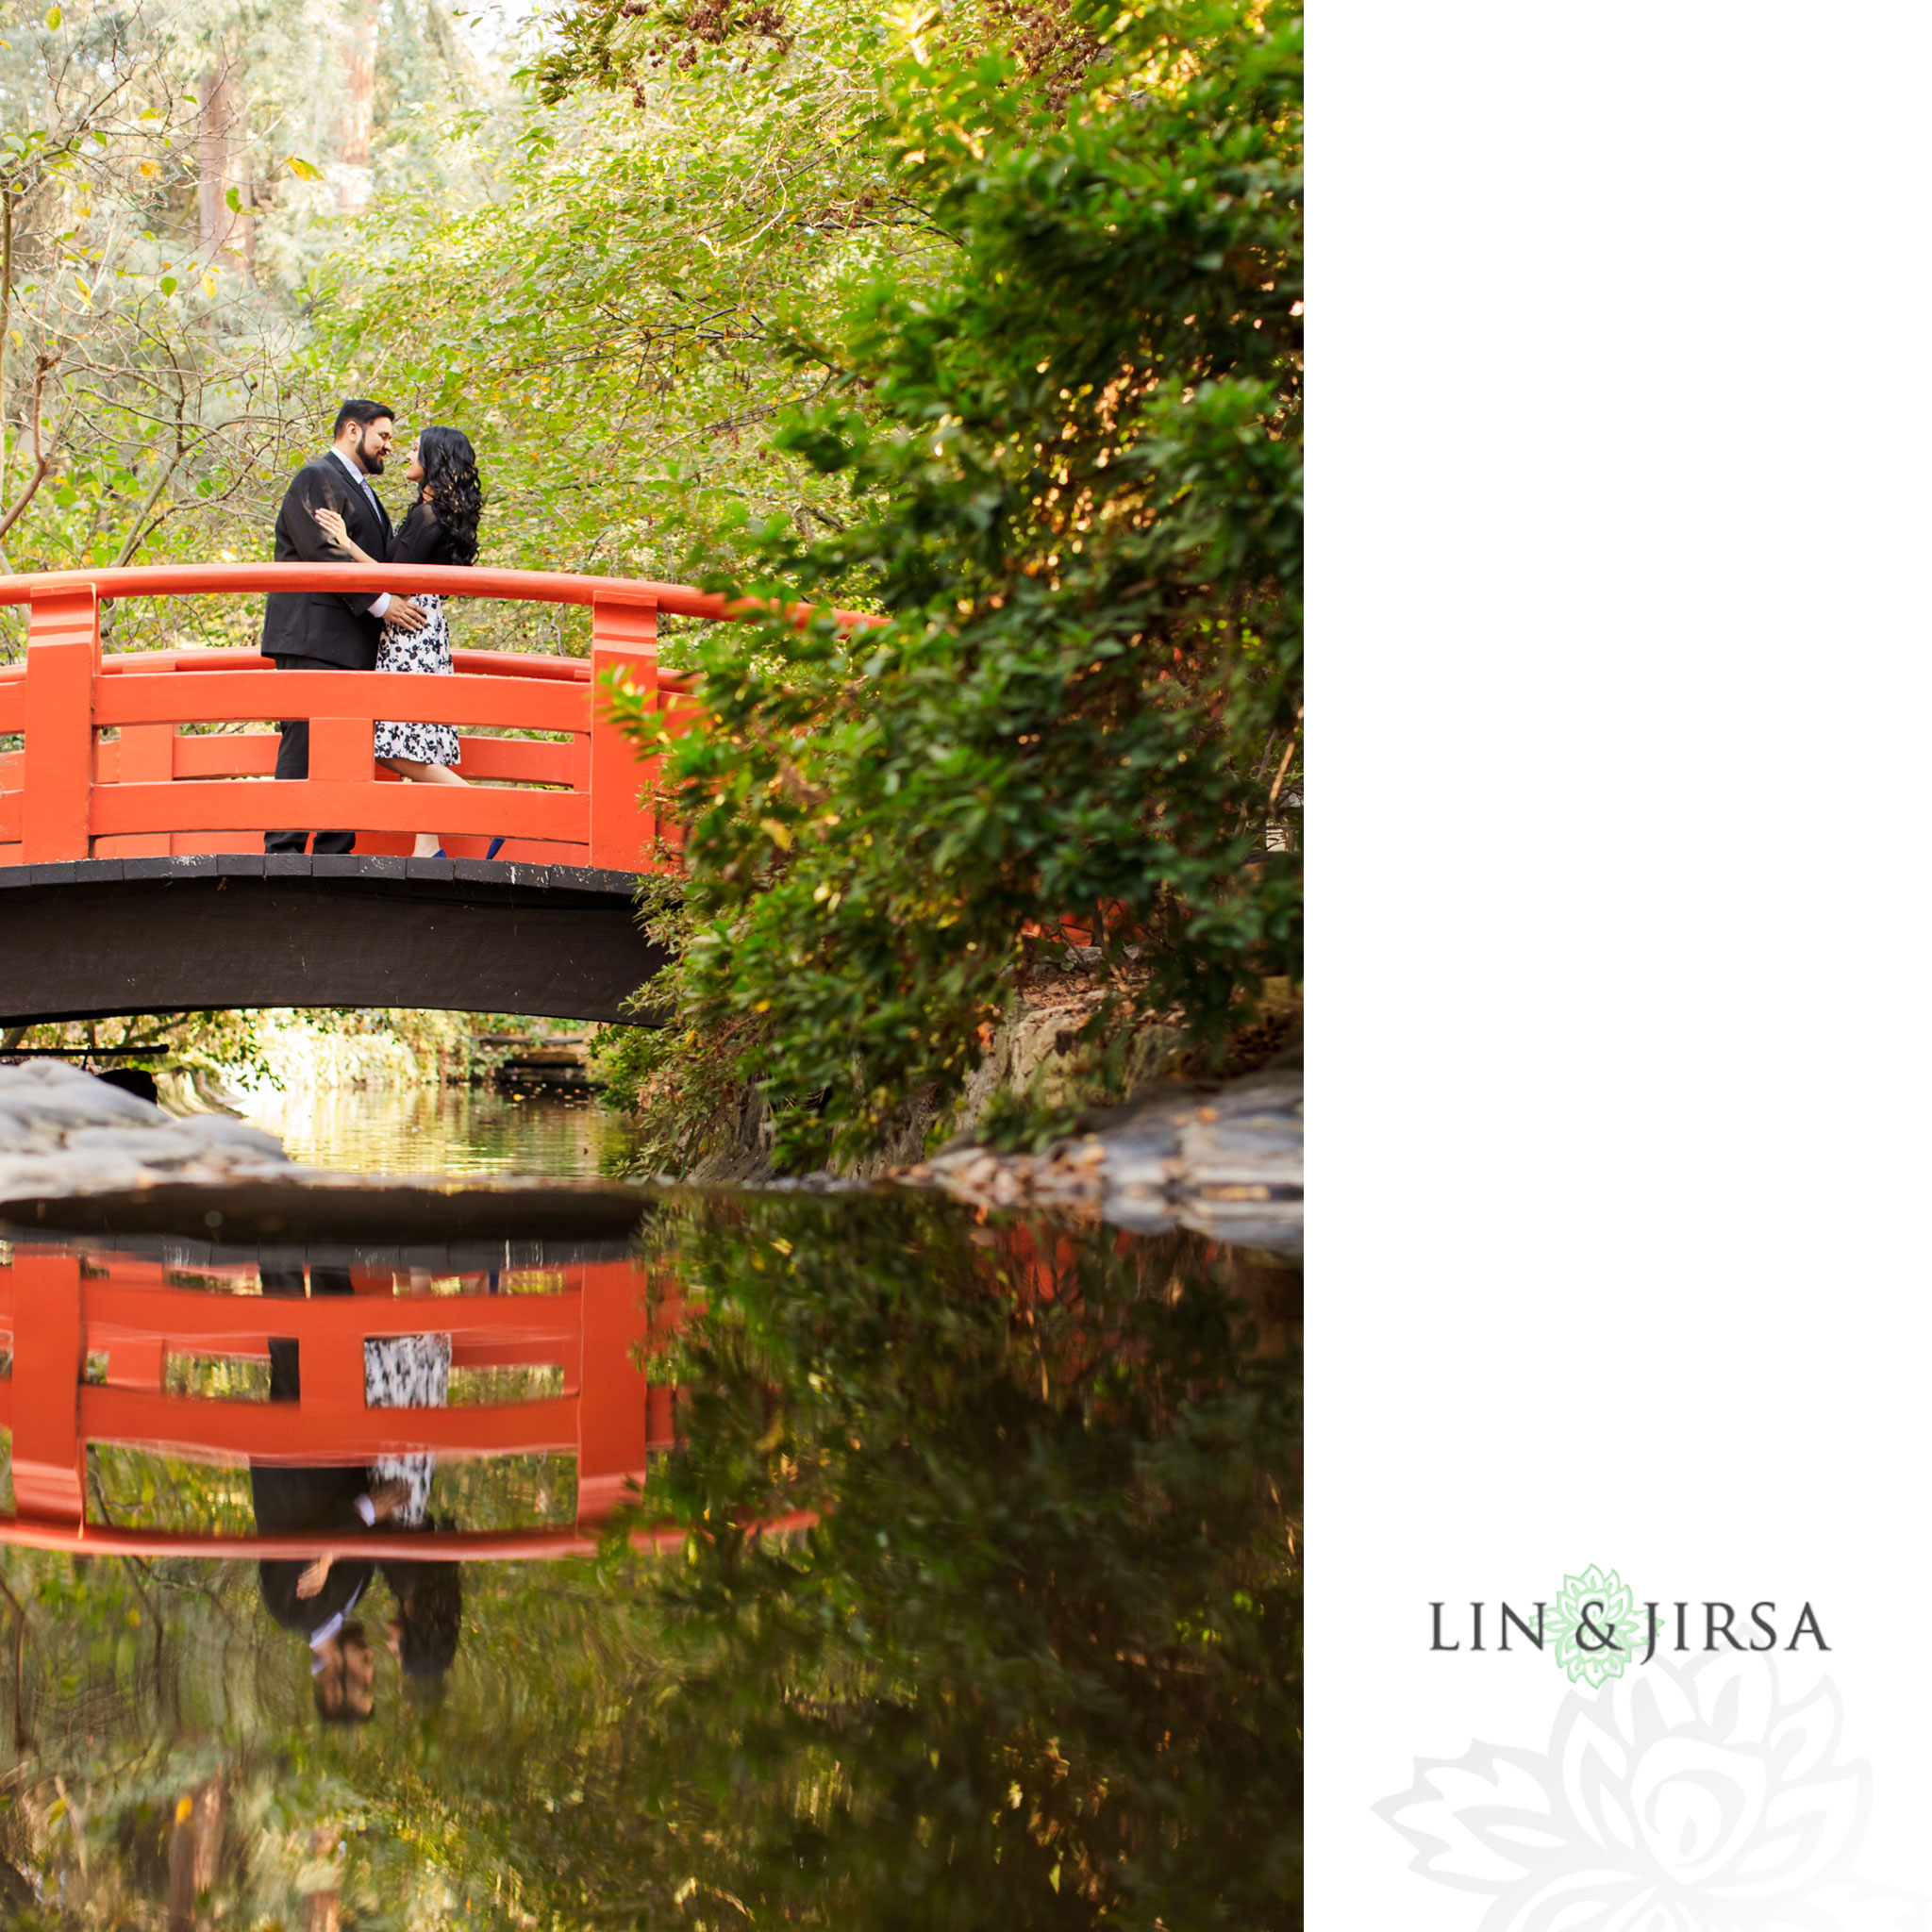 004 descanso gardens los angeles county engagement session